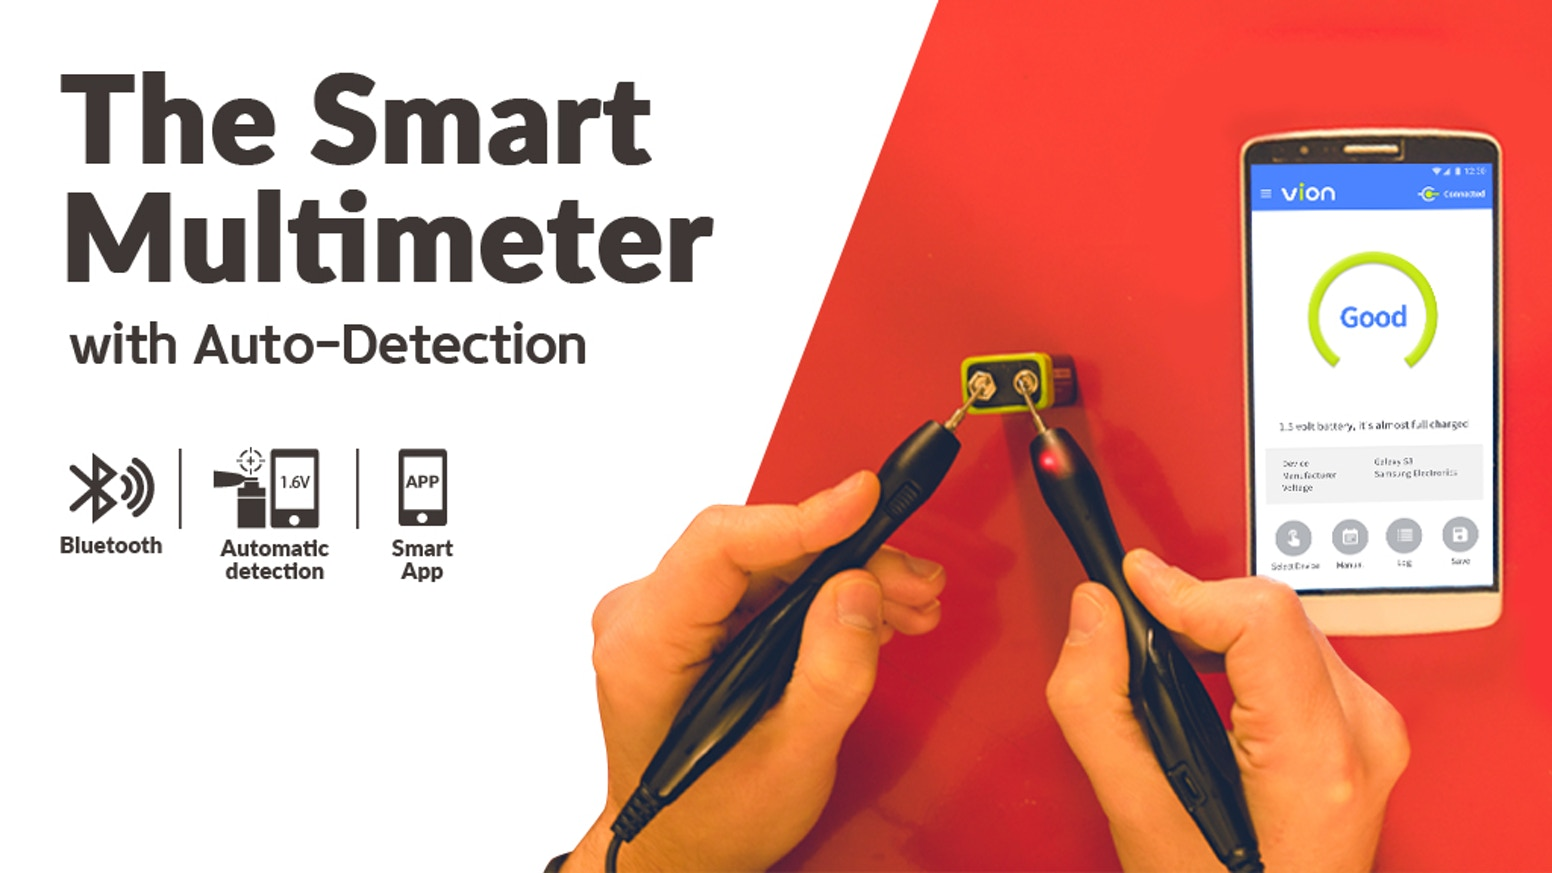 The simplest multimeter for the everyday person equipped with automatic detection, Bluetooth connectivity, and a smartphone application